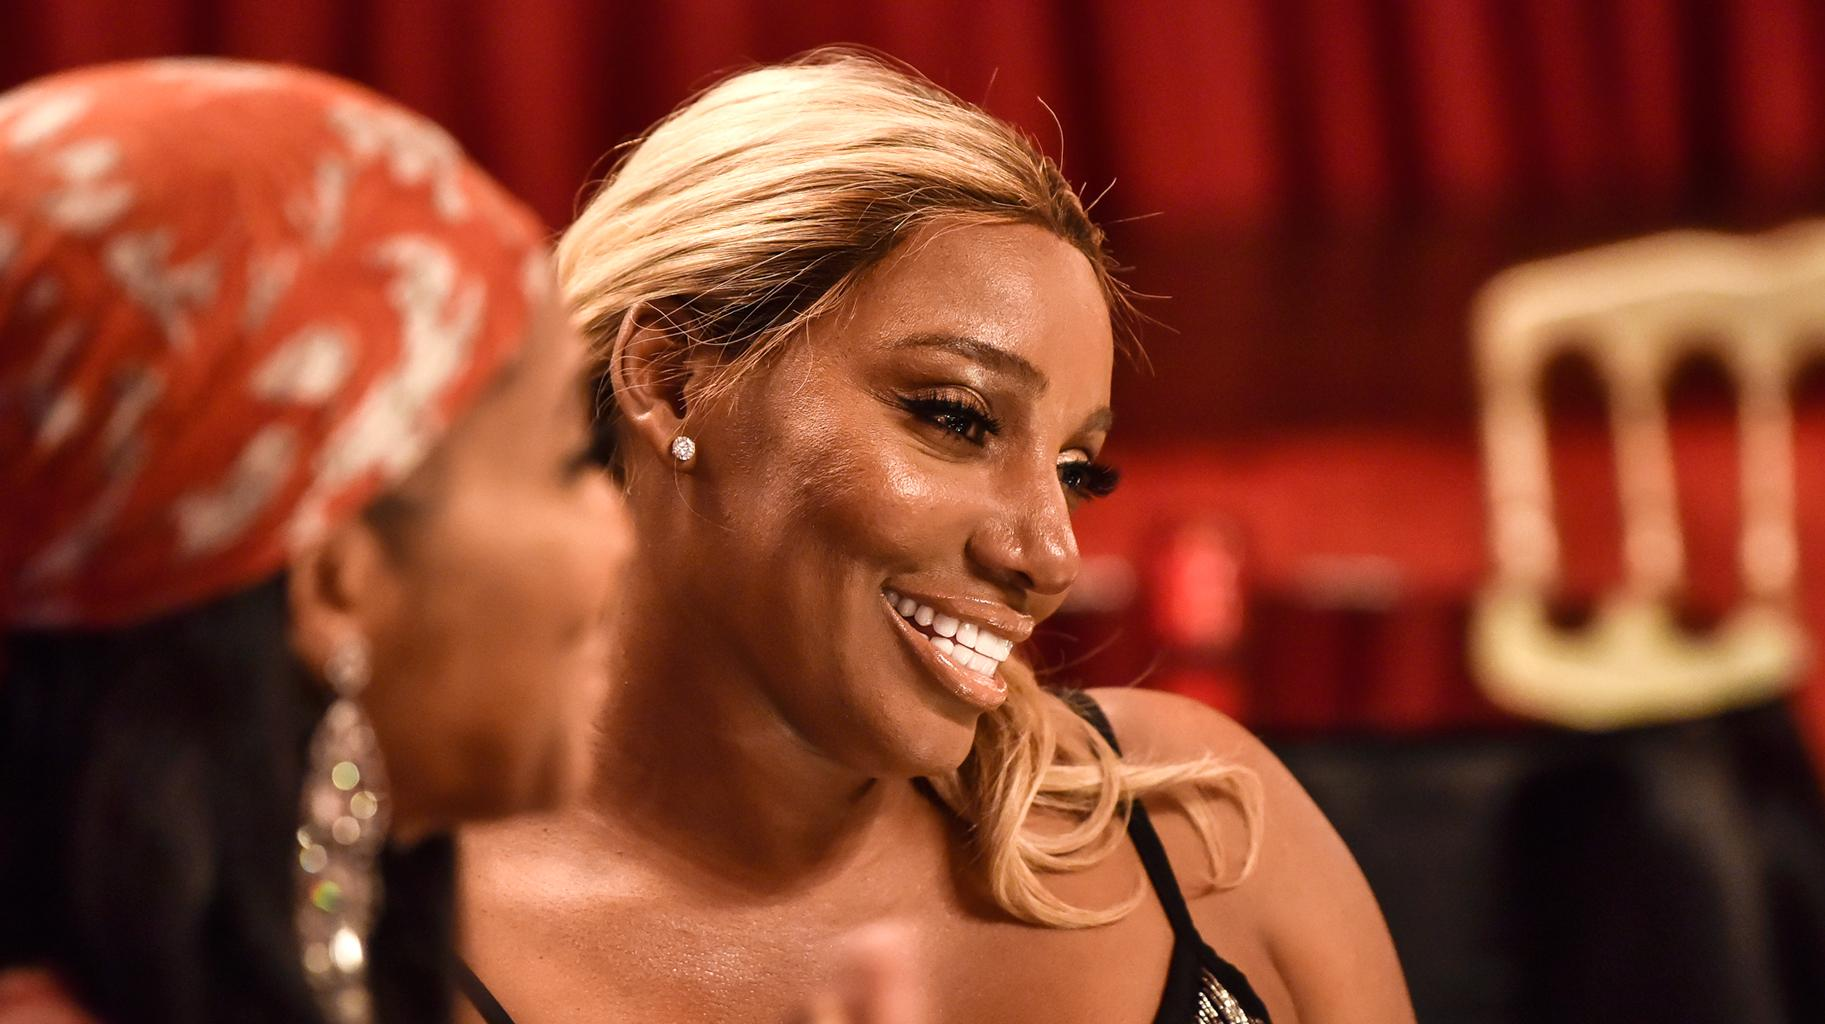 NeNe Leakes Makes Her Fans Laugh Their Hearts Out With A Diet-Related Post - Check It Out Here